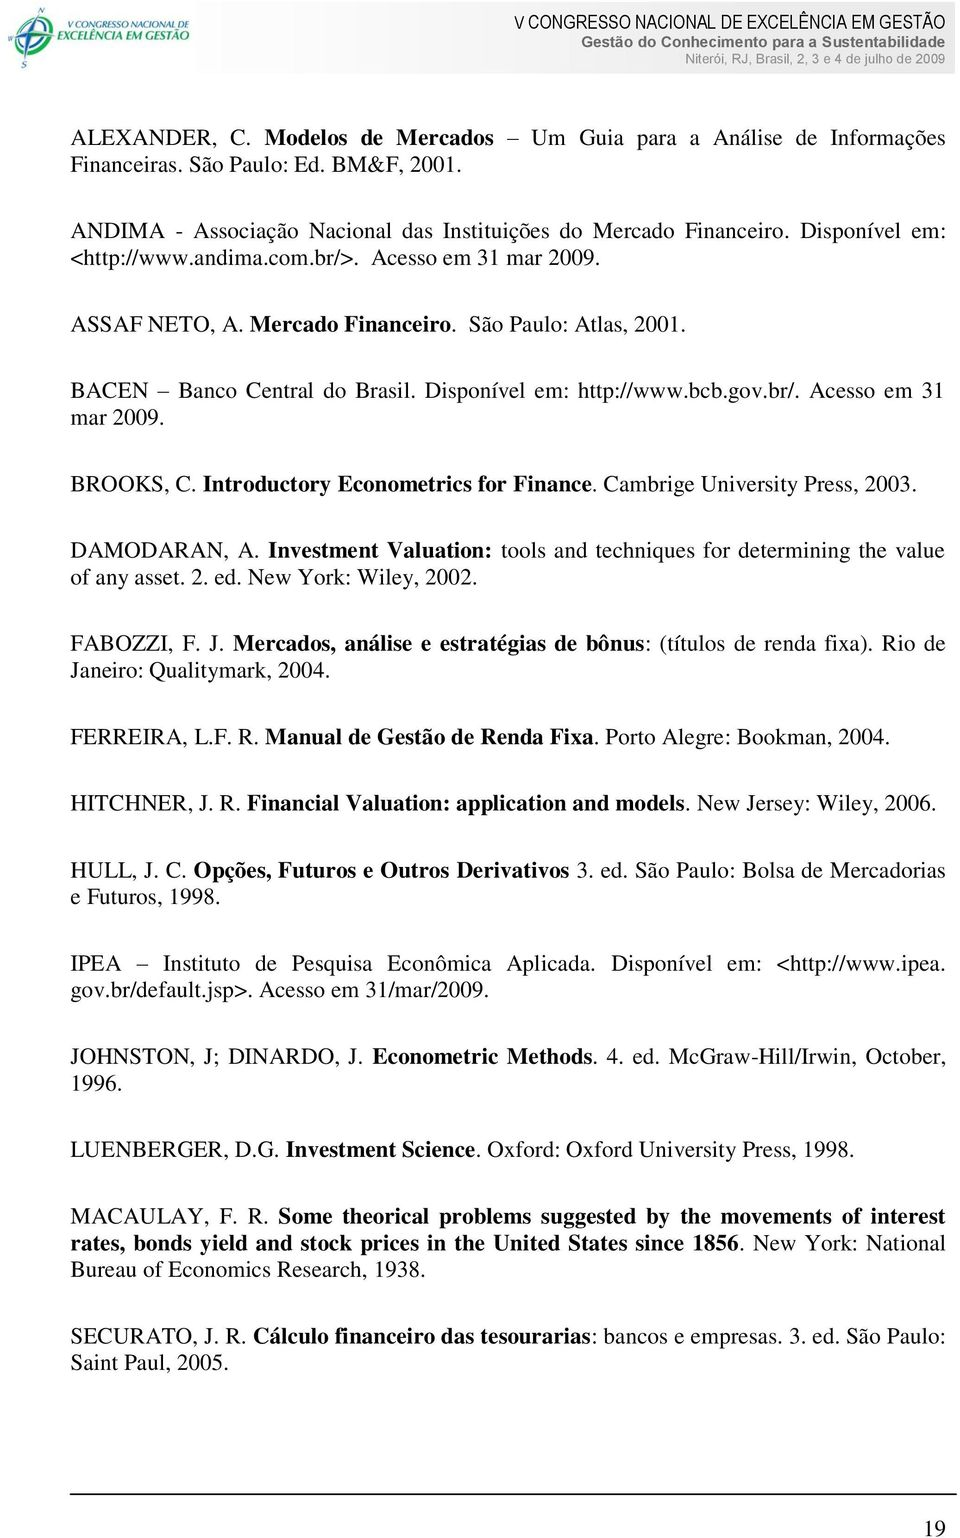 Inroducory Economerics for Finance. Cambrige Universiy Press, 2003. DAMODARAN, A. Invesmen Valuaion: ools and echniques for deermining he value of any asse. 2. ed. New York: Wiley, 2002. FABOZZI, F.